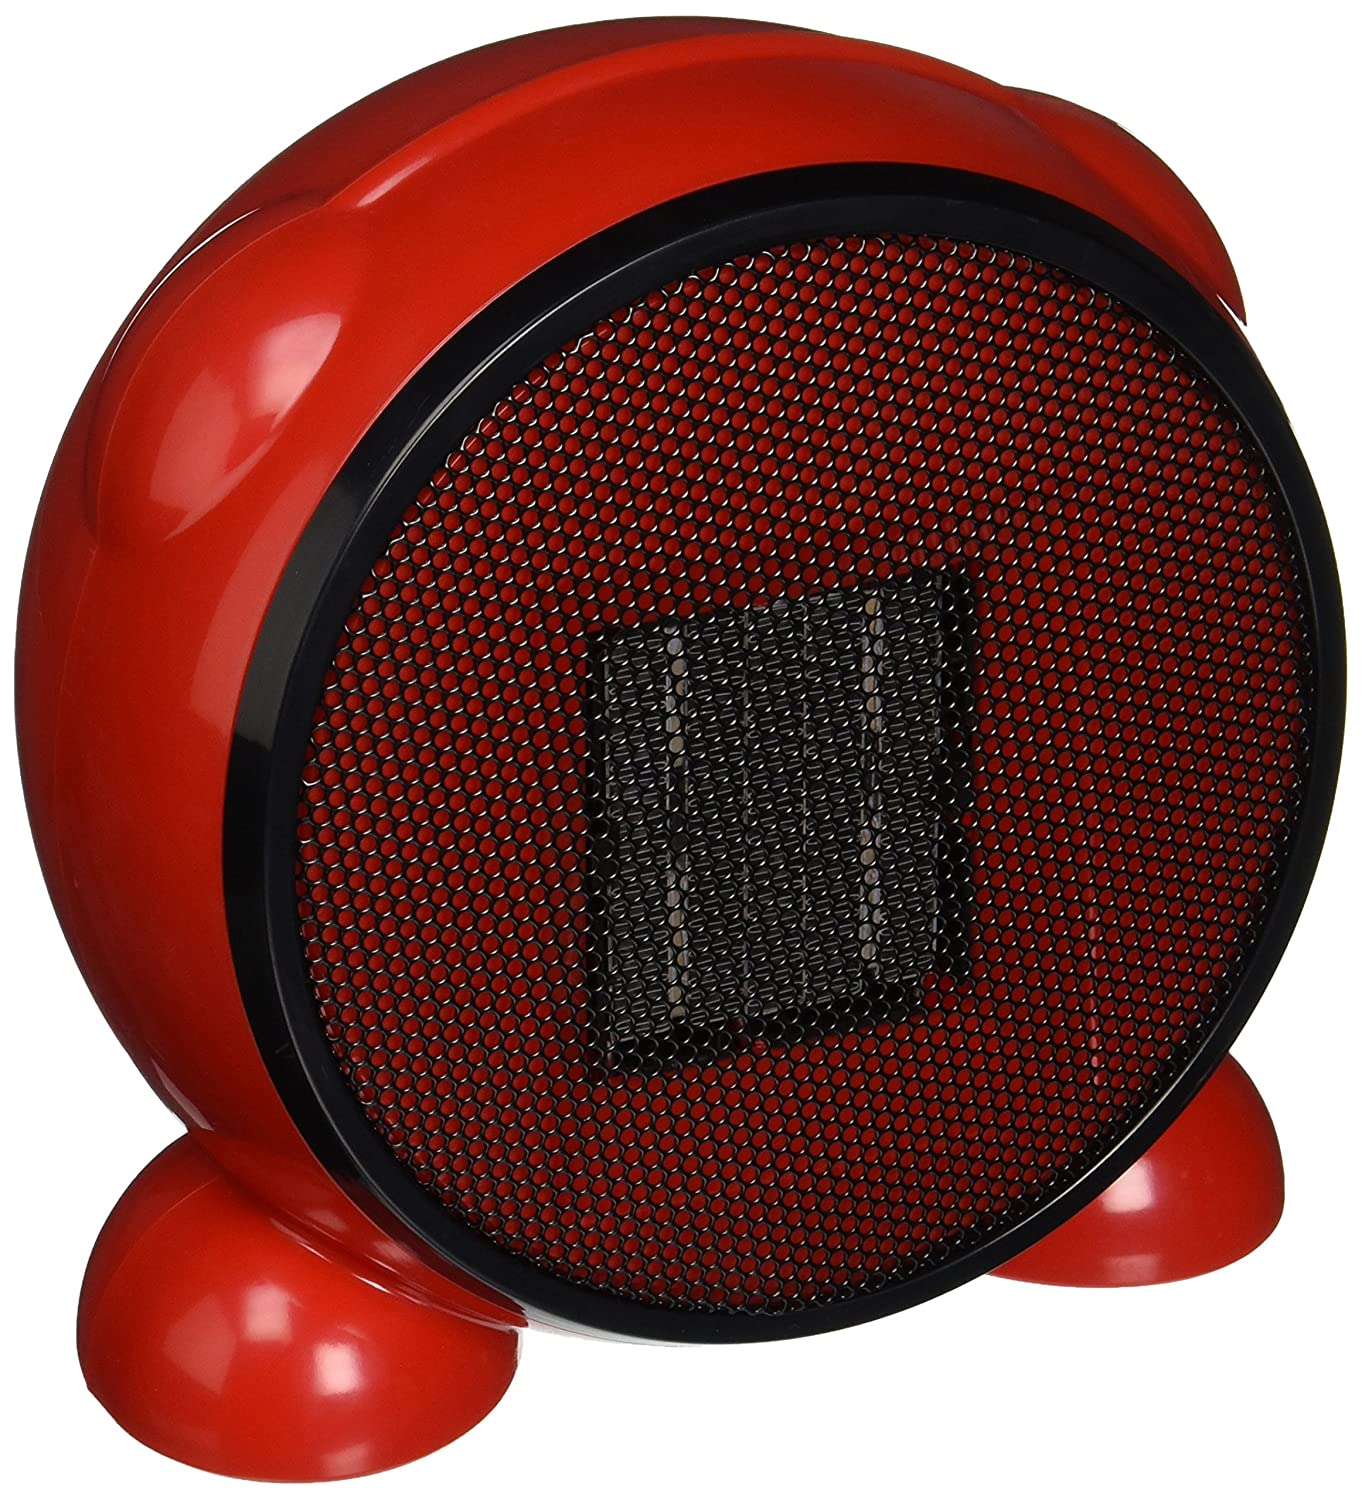 e-joy LEDMart Portable Space/Desktop Heater, Red